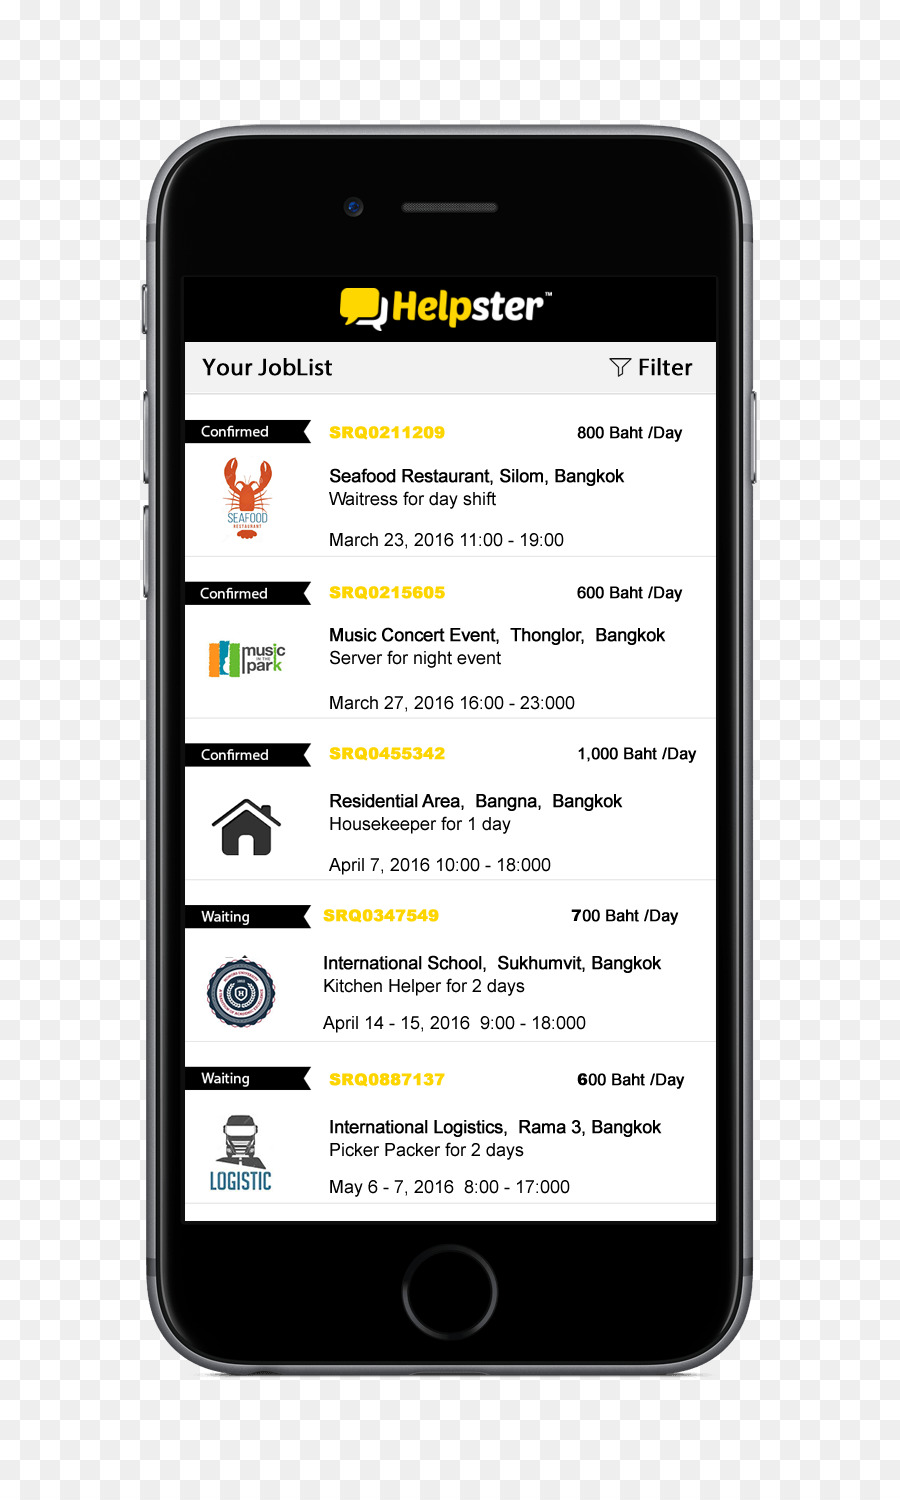 Android App Store Microsoft Planer Android Png Herunterladen 857